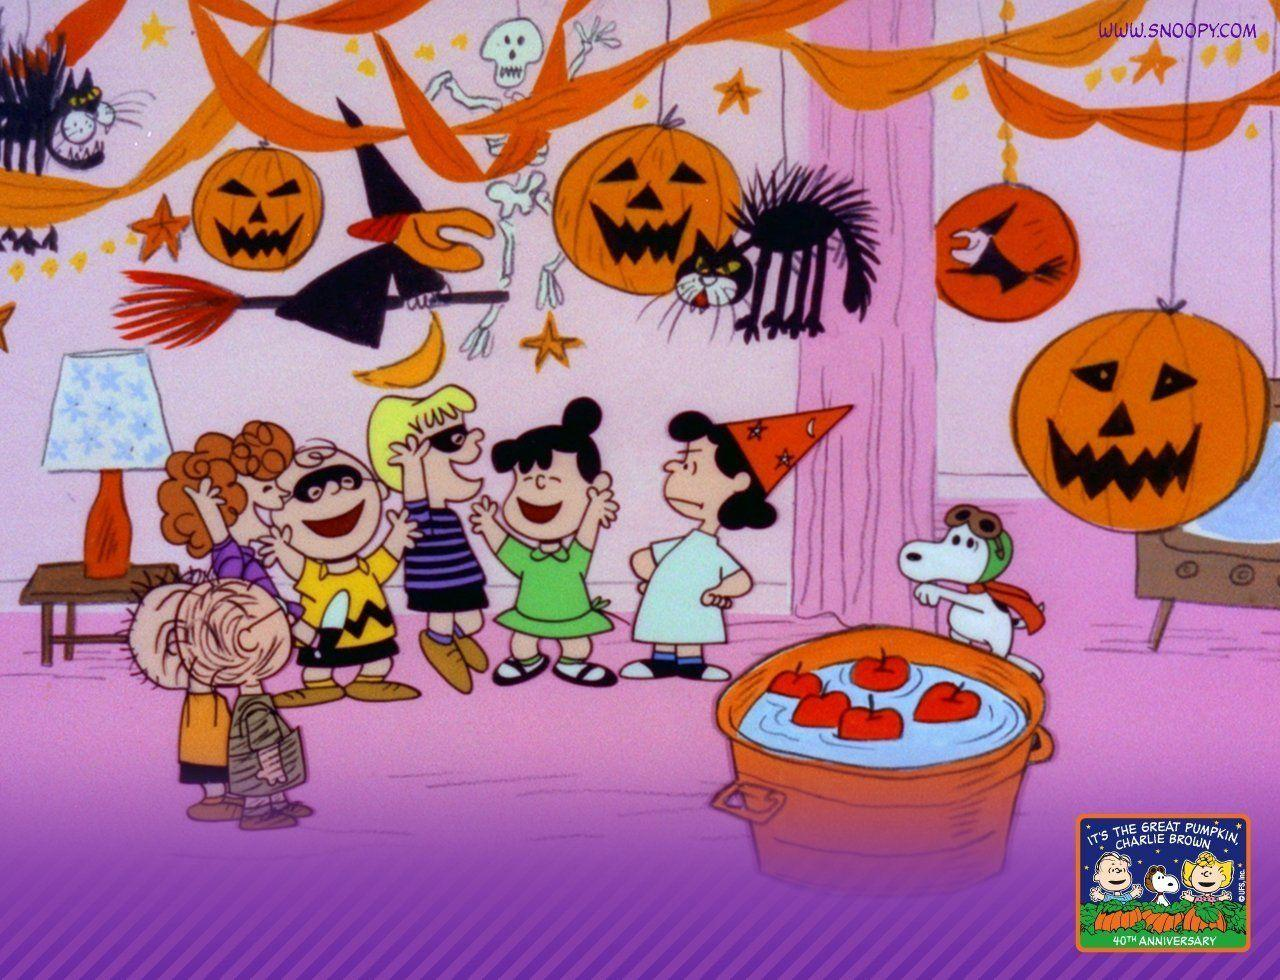 Charlie Brown Halloween Wallpapers Wallpaper Cave